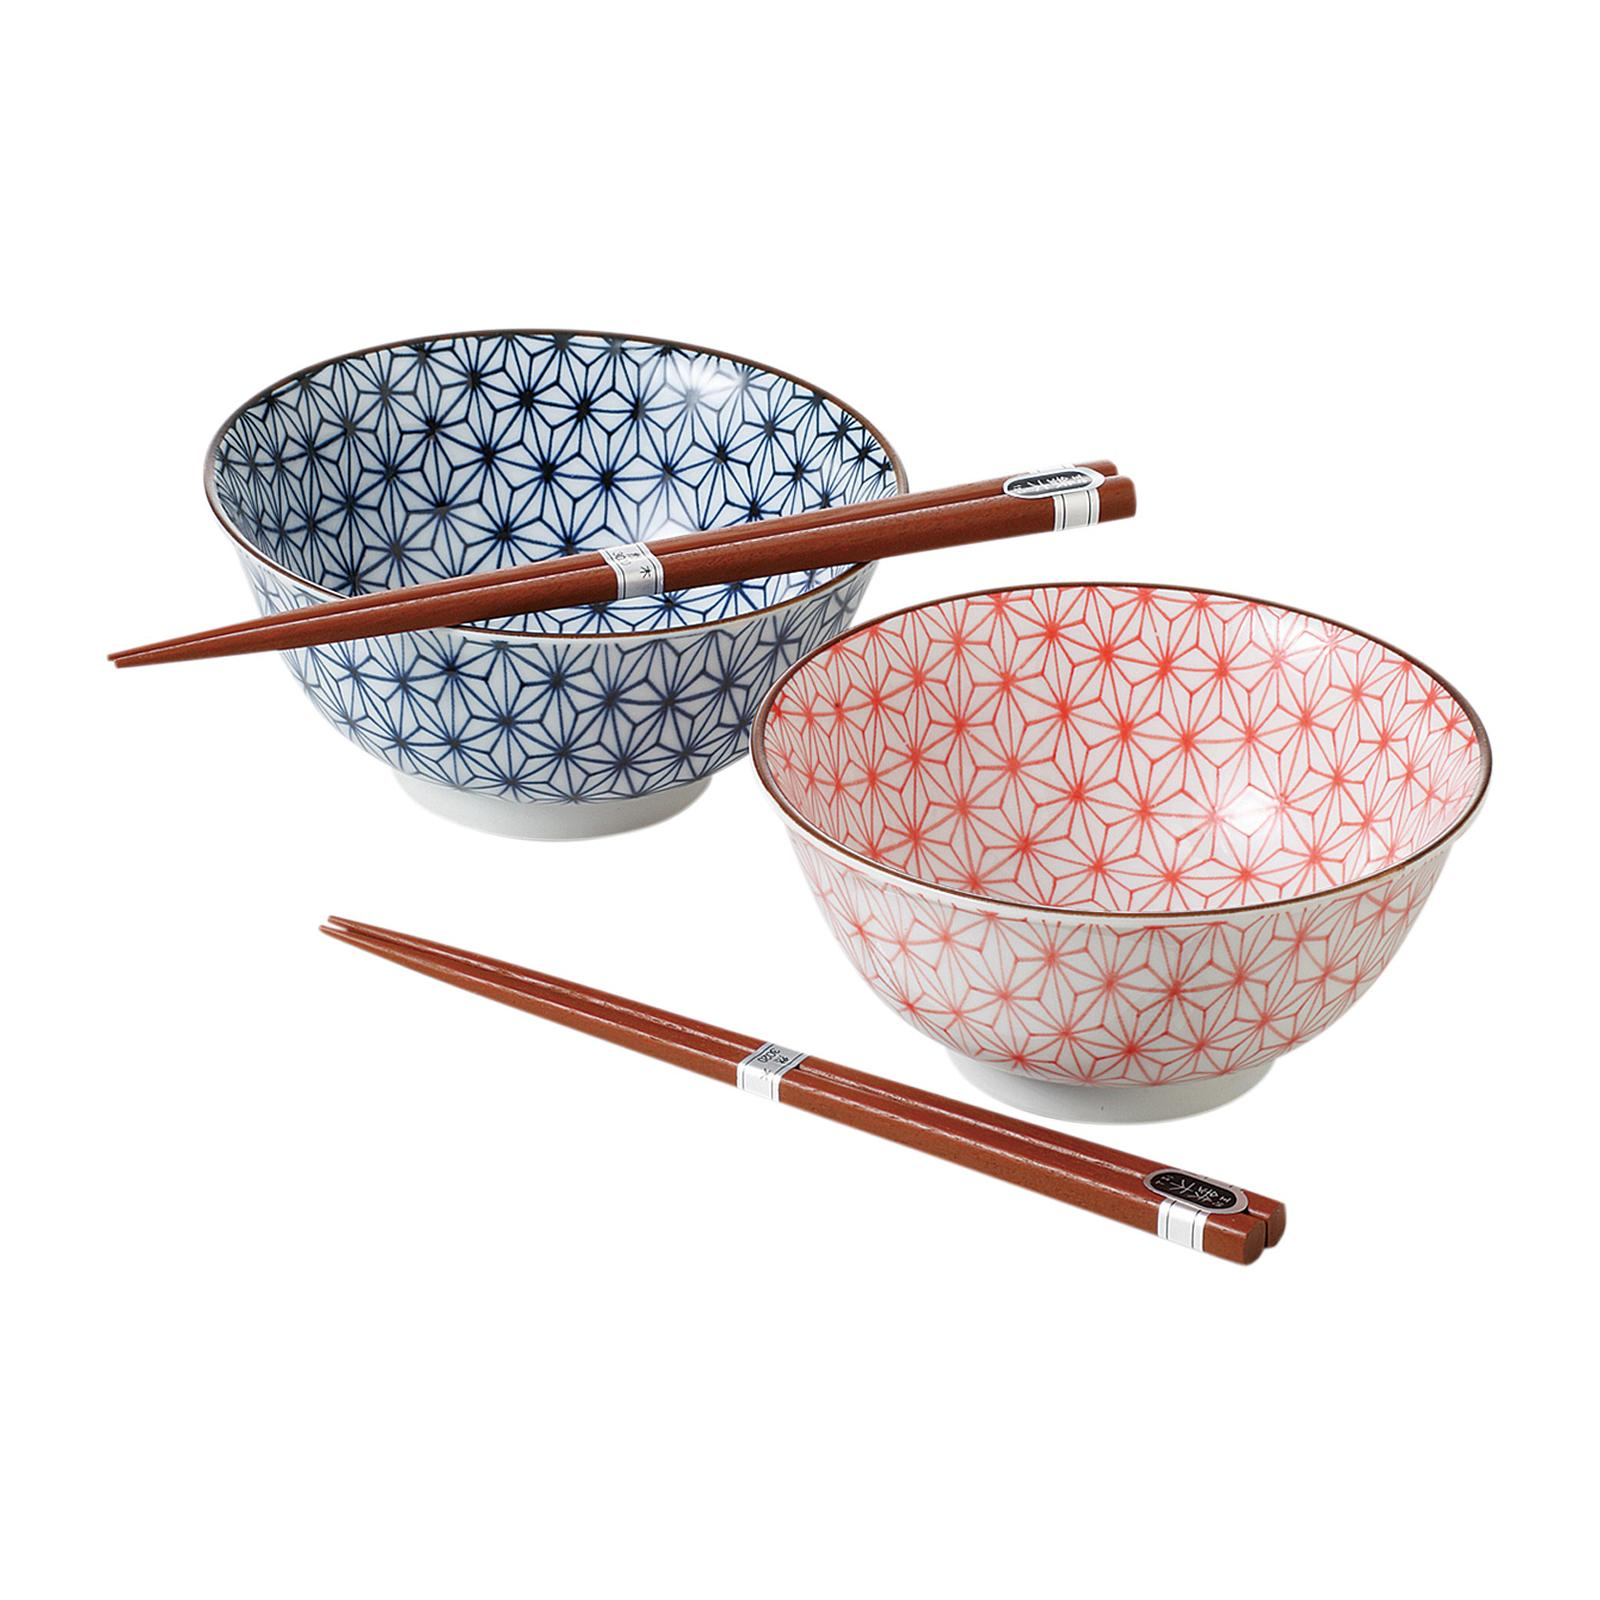 Tsuru 80 - 51 - 34 2 PCS Bowl With Chopsticks Set